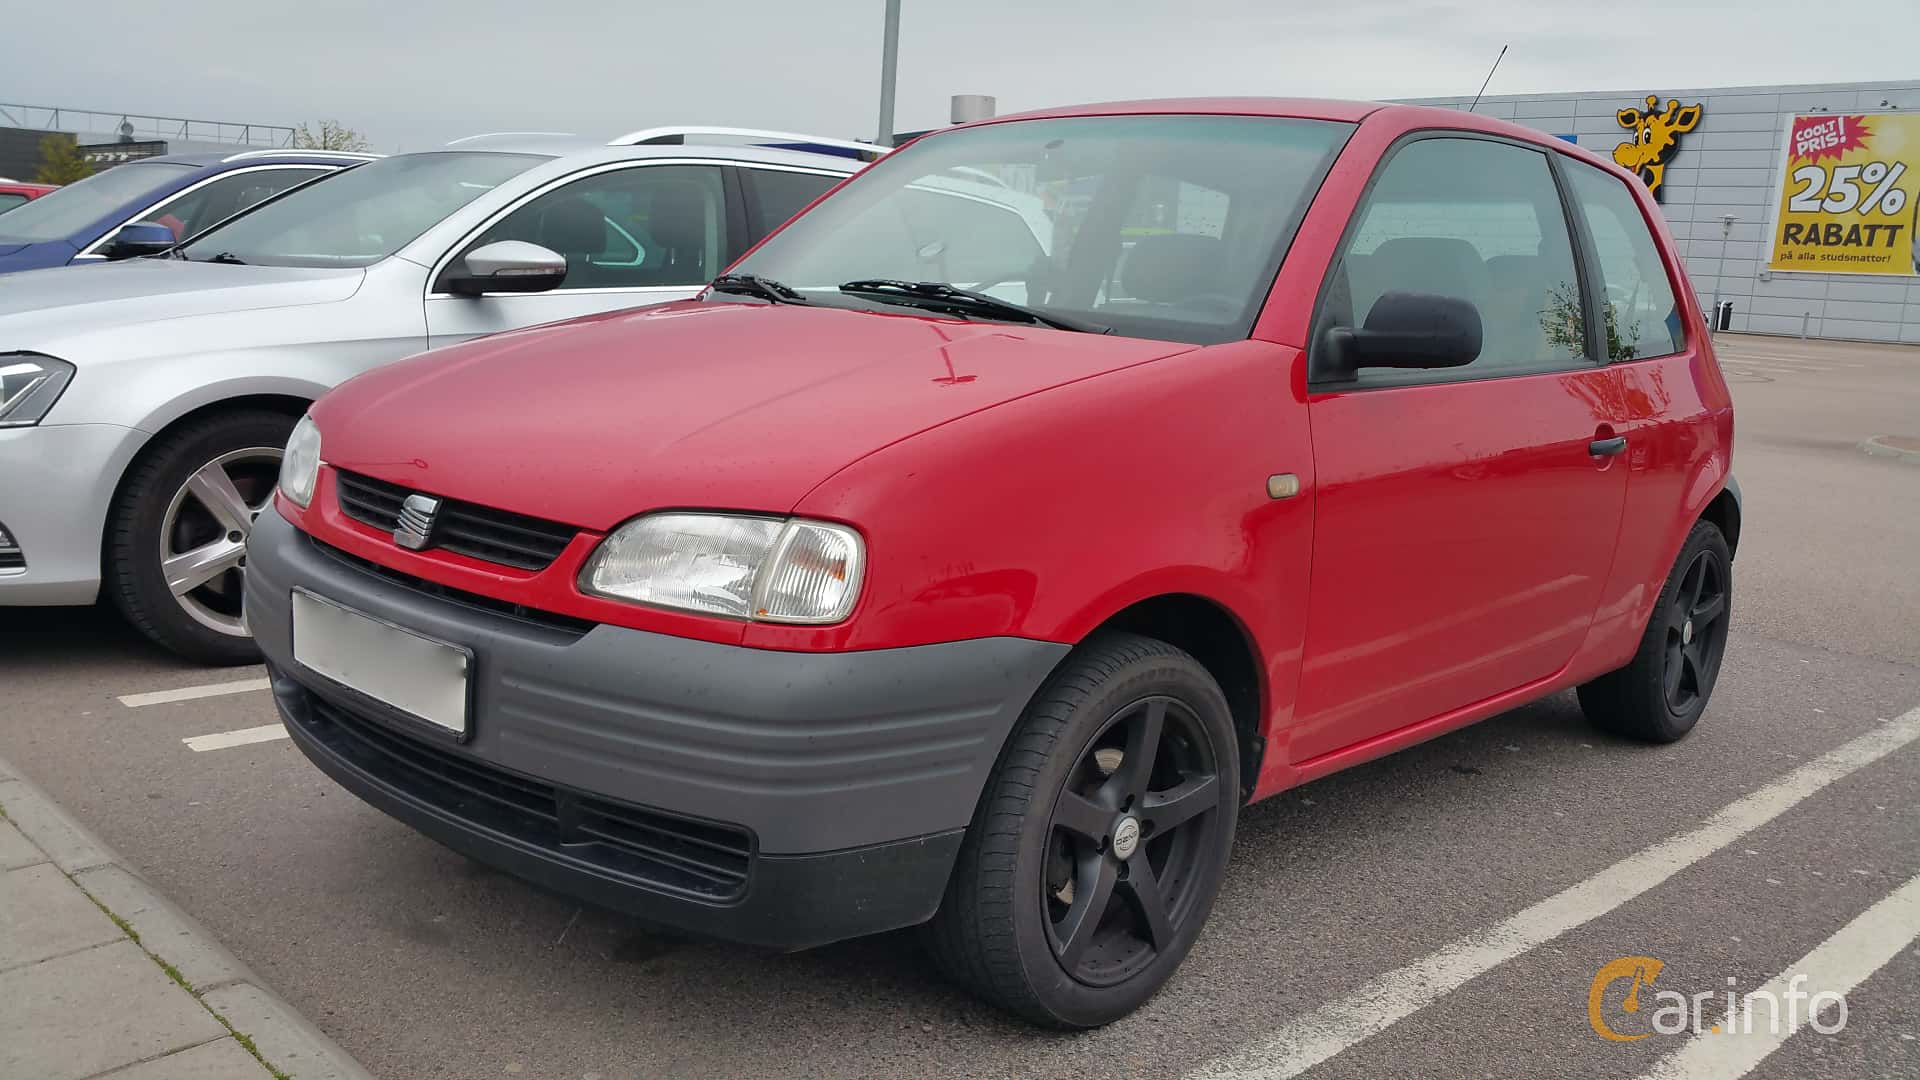 3 images of seat arosa 1 4 manual 60hp 1999 by marcusliedholm rh car info seat arosa manual pdf seat arosa manual pdf